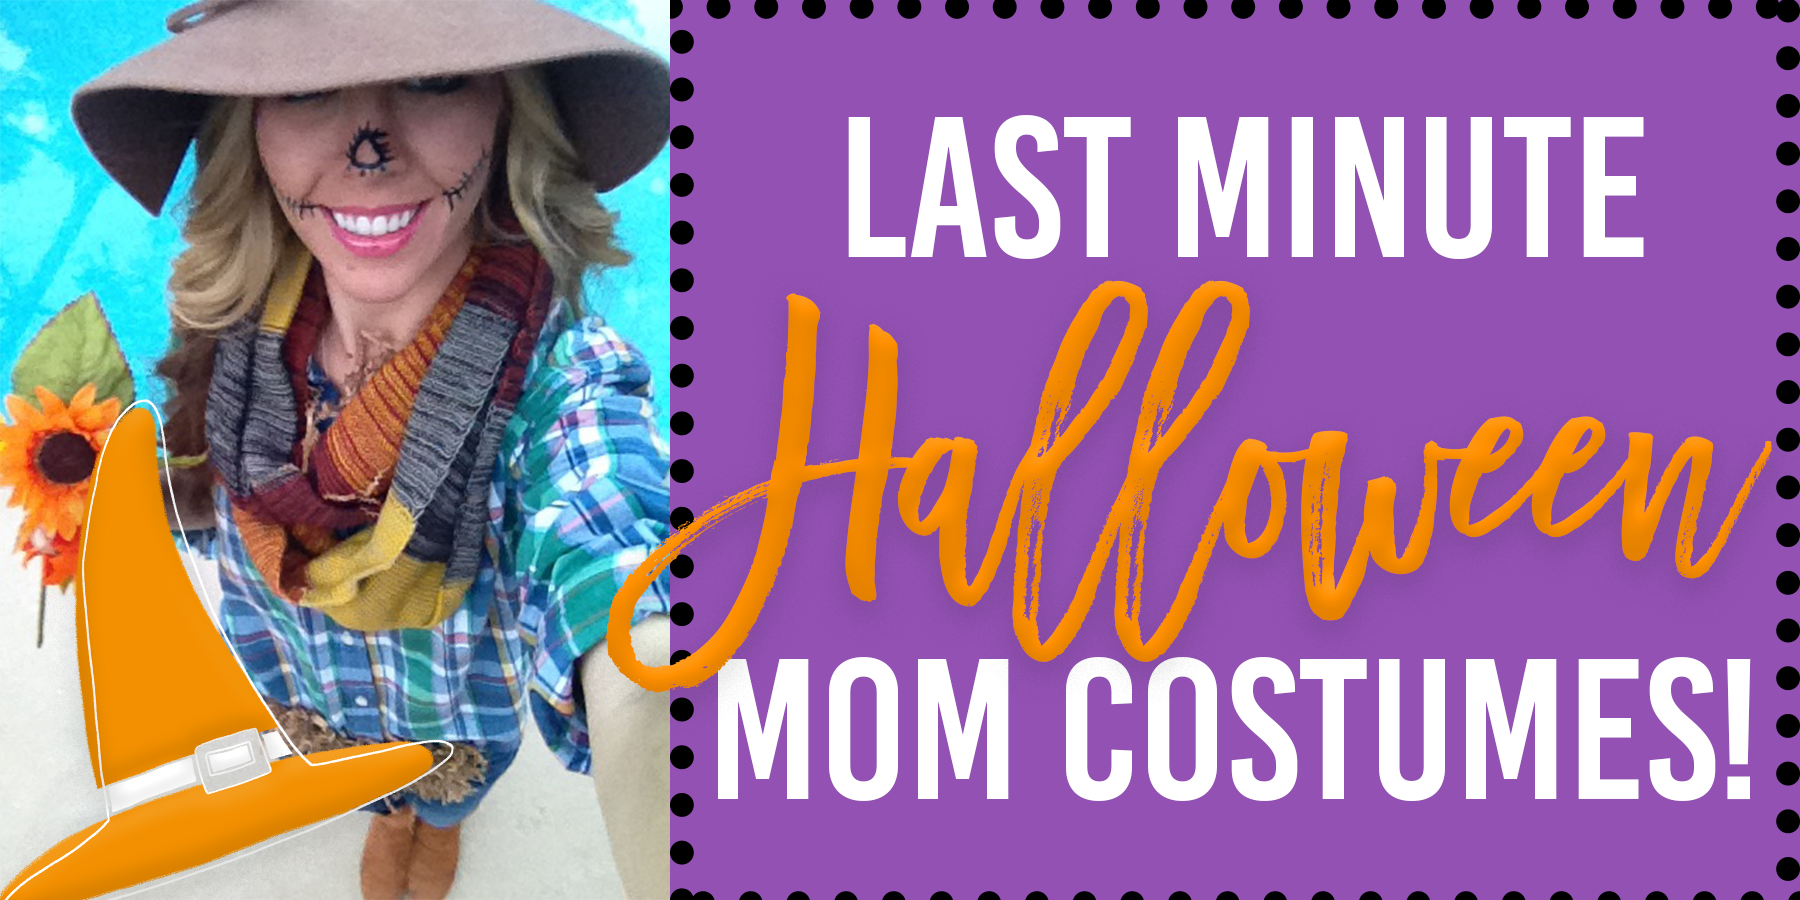 Last Minute Mom Costumes